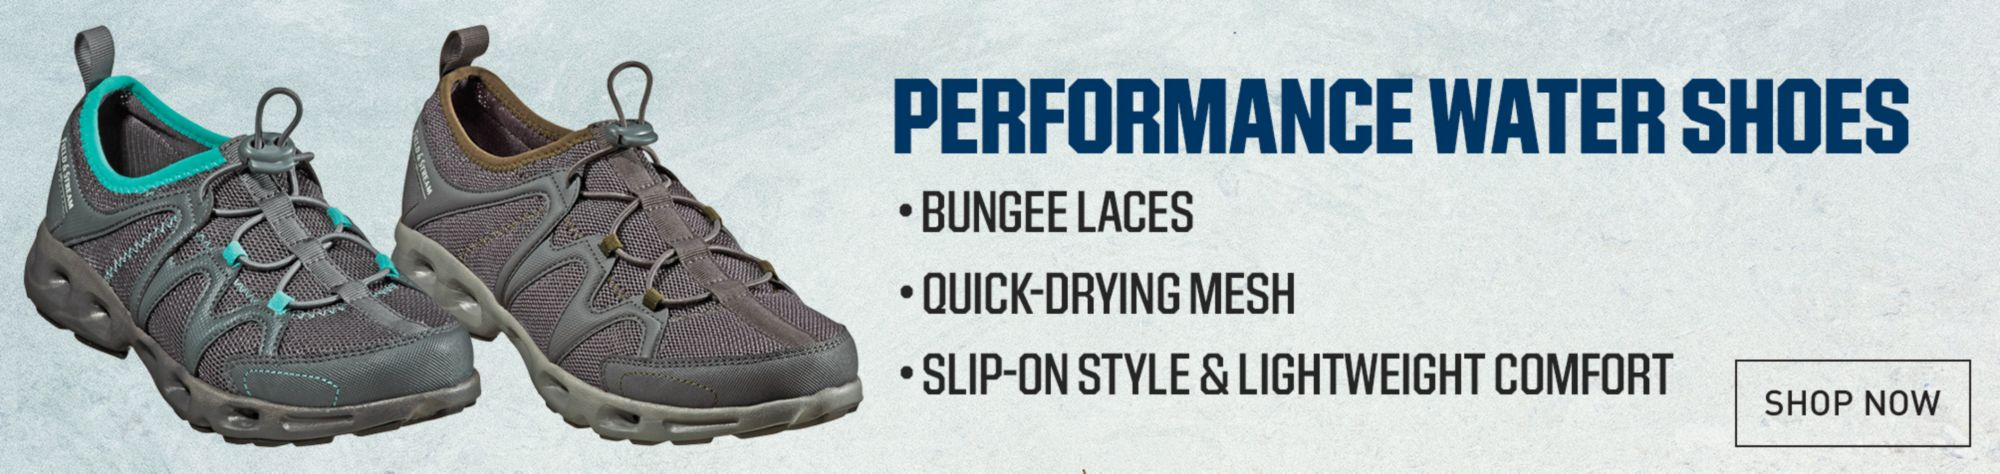 Shop Performance Water Shoes